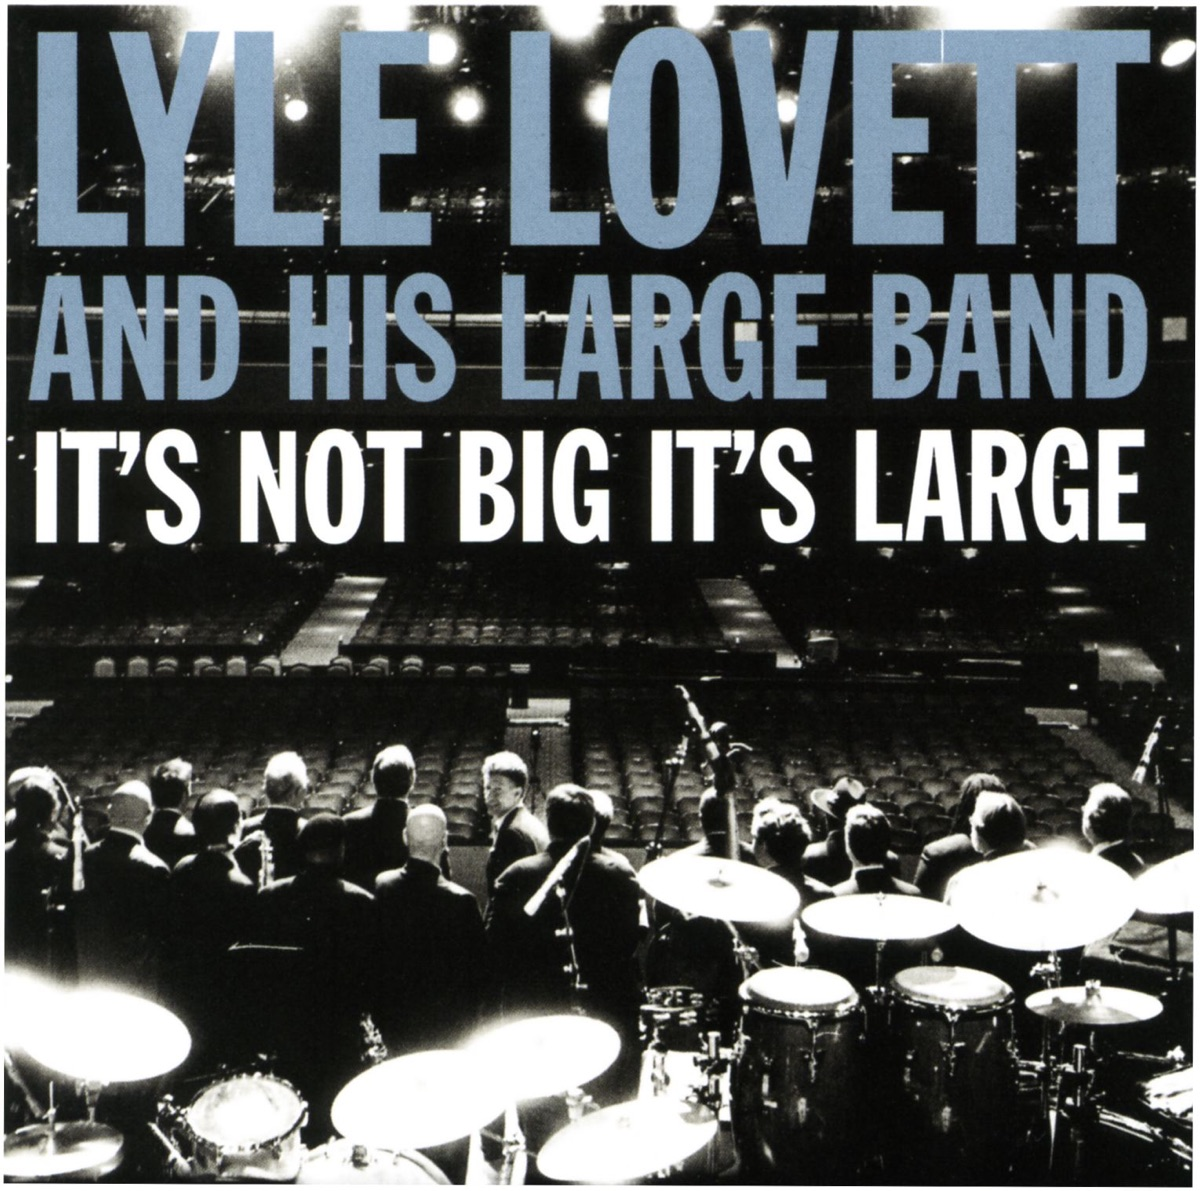 Its Not Big Its Large Lyle Lovett  His Large Band CD cover